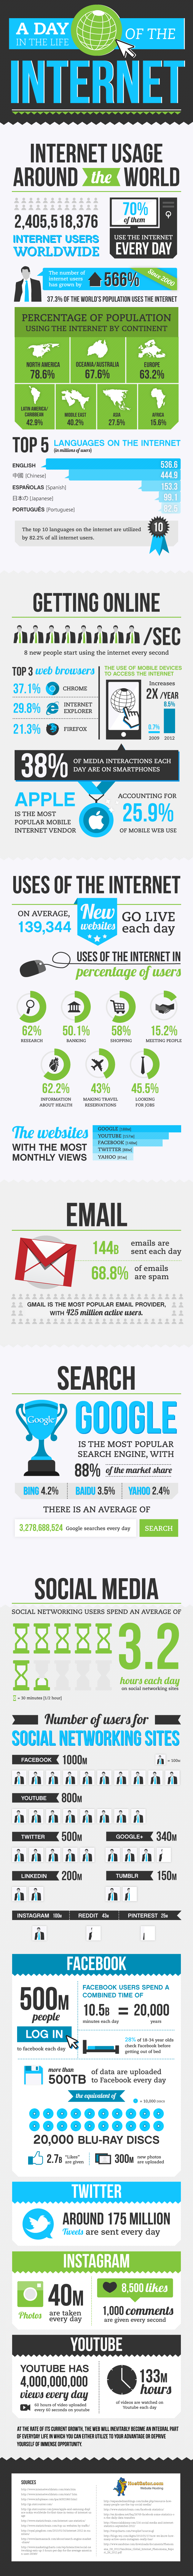 A Day In The Life Of The Internet #Infographic